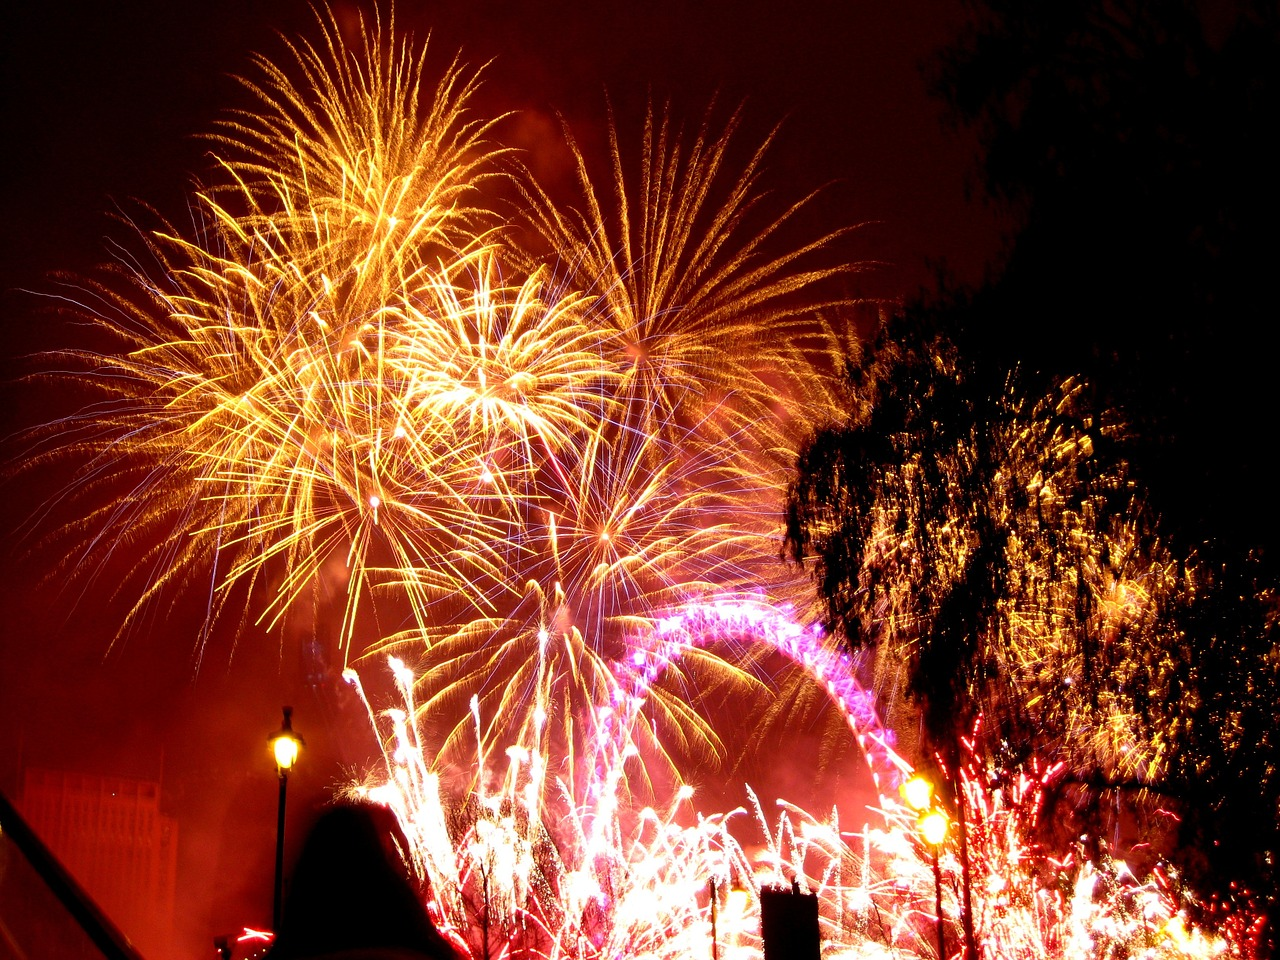 The fireworks will take place over the London Eye